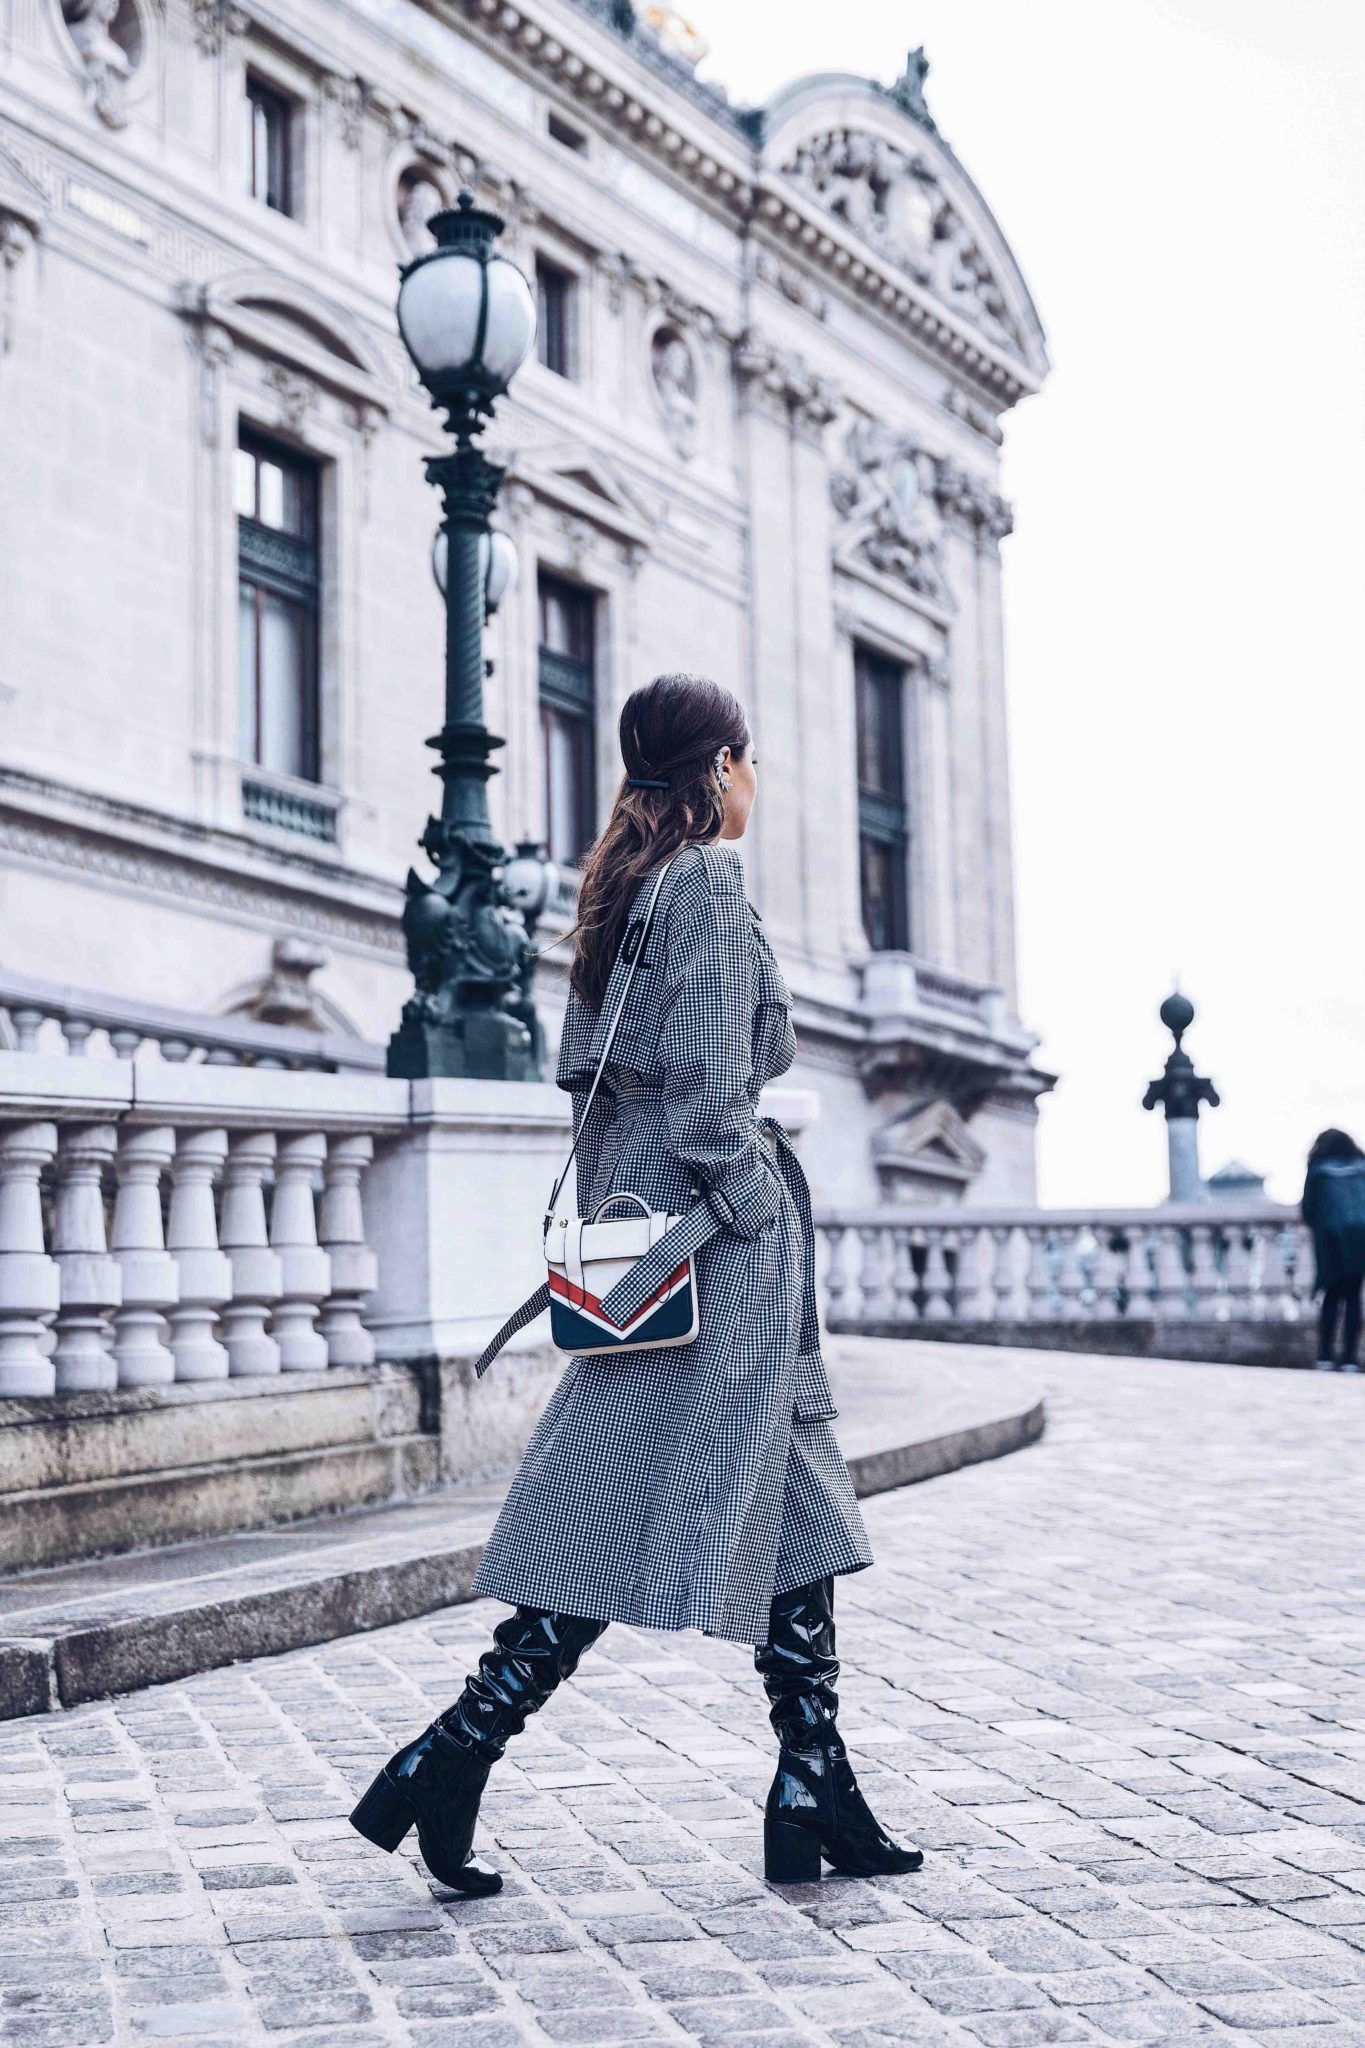 Mode Rsvp style blog founded by Julia Comil French fashion blogger in Los Angeles Spring Trench Coat - Gingham Trench Coat - Long Trench coat - Trench coat for women 2018 - Paris - Fashion Blogger Julia Comil styling the long trench coat in Paris - Bag: Strathberry - Mo&Co cotton trench coat